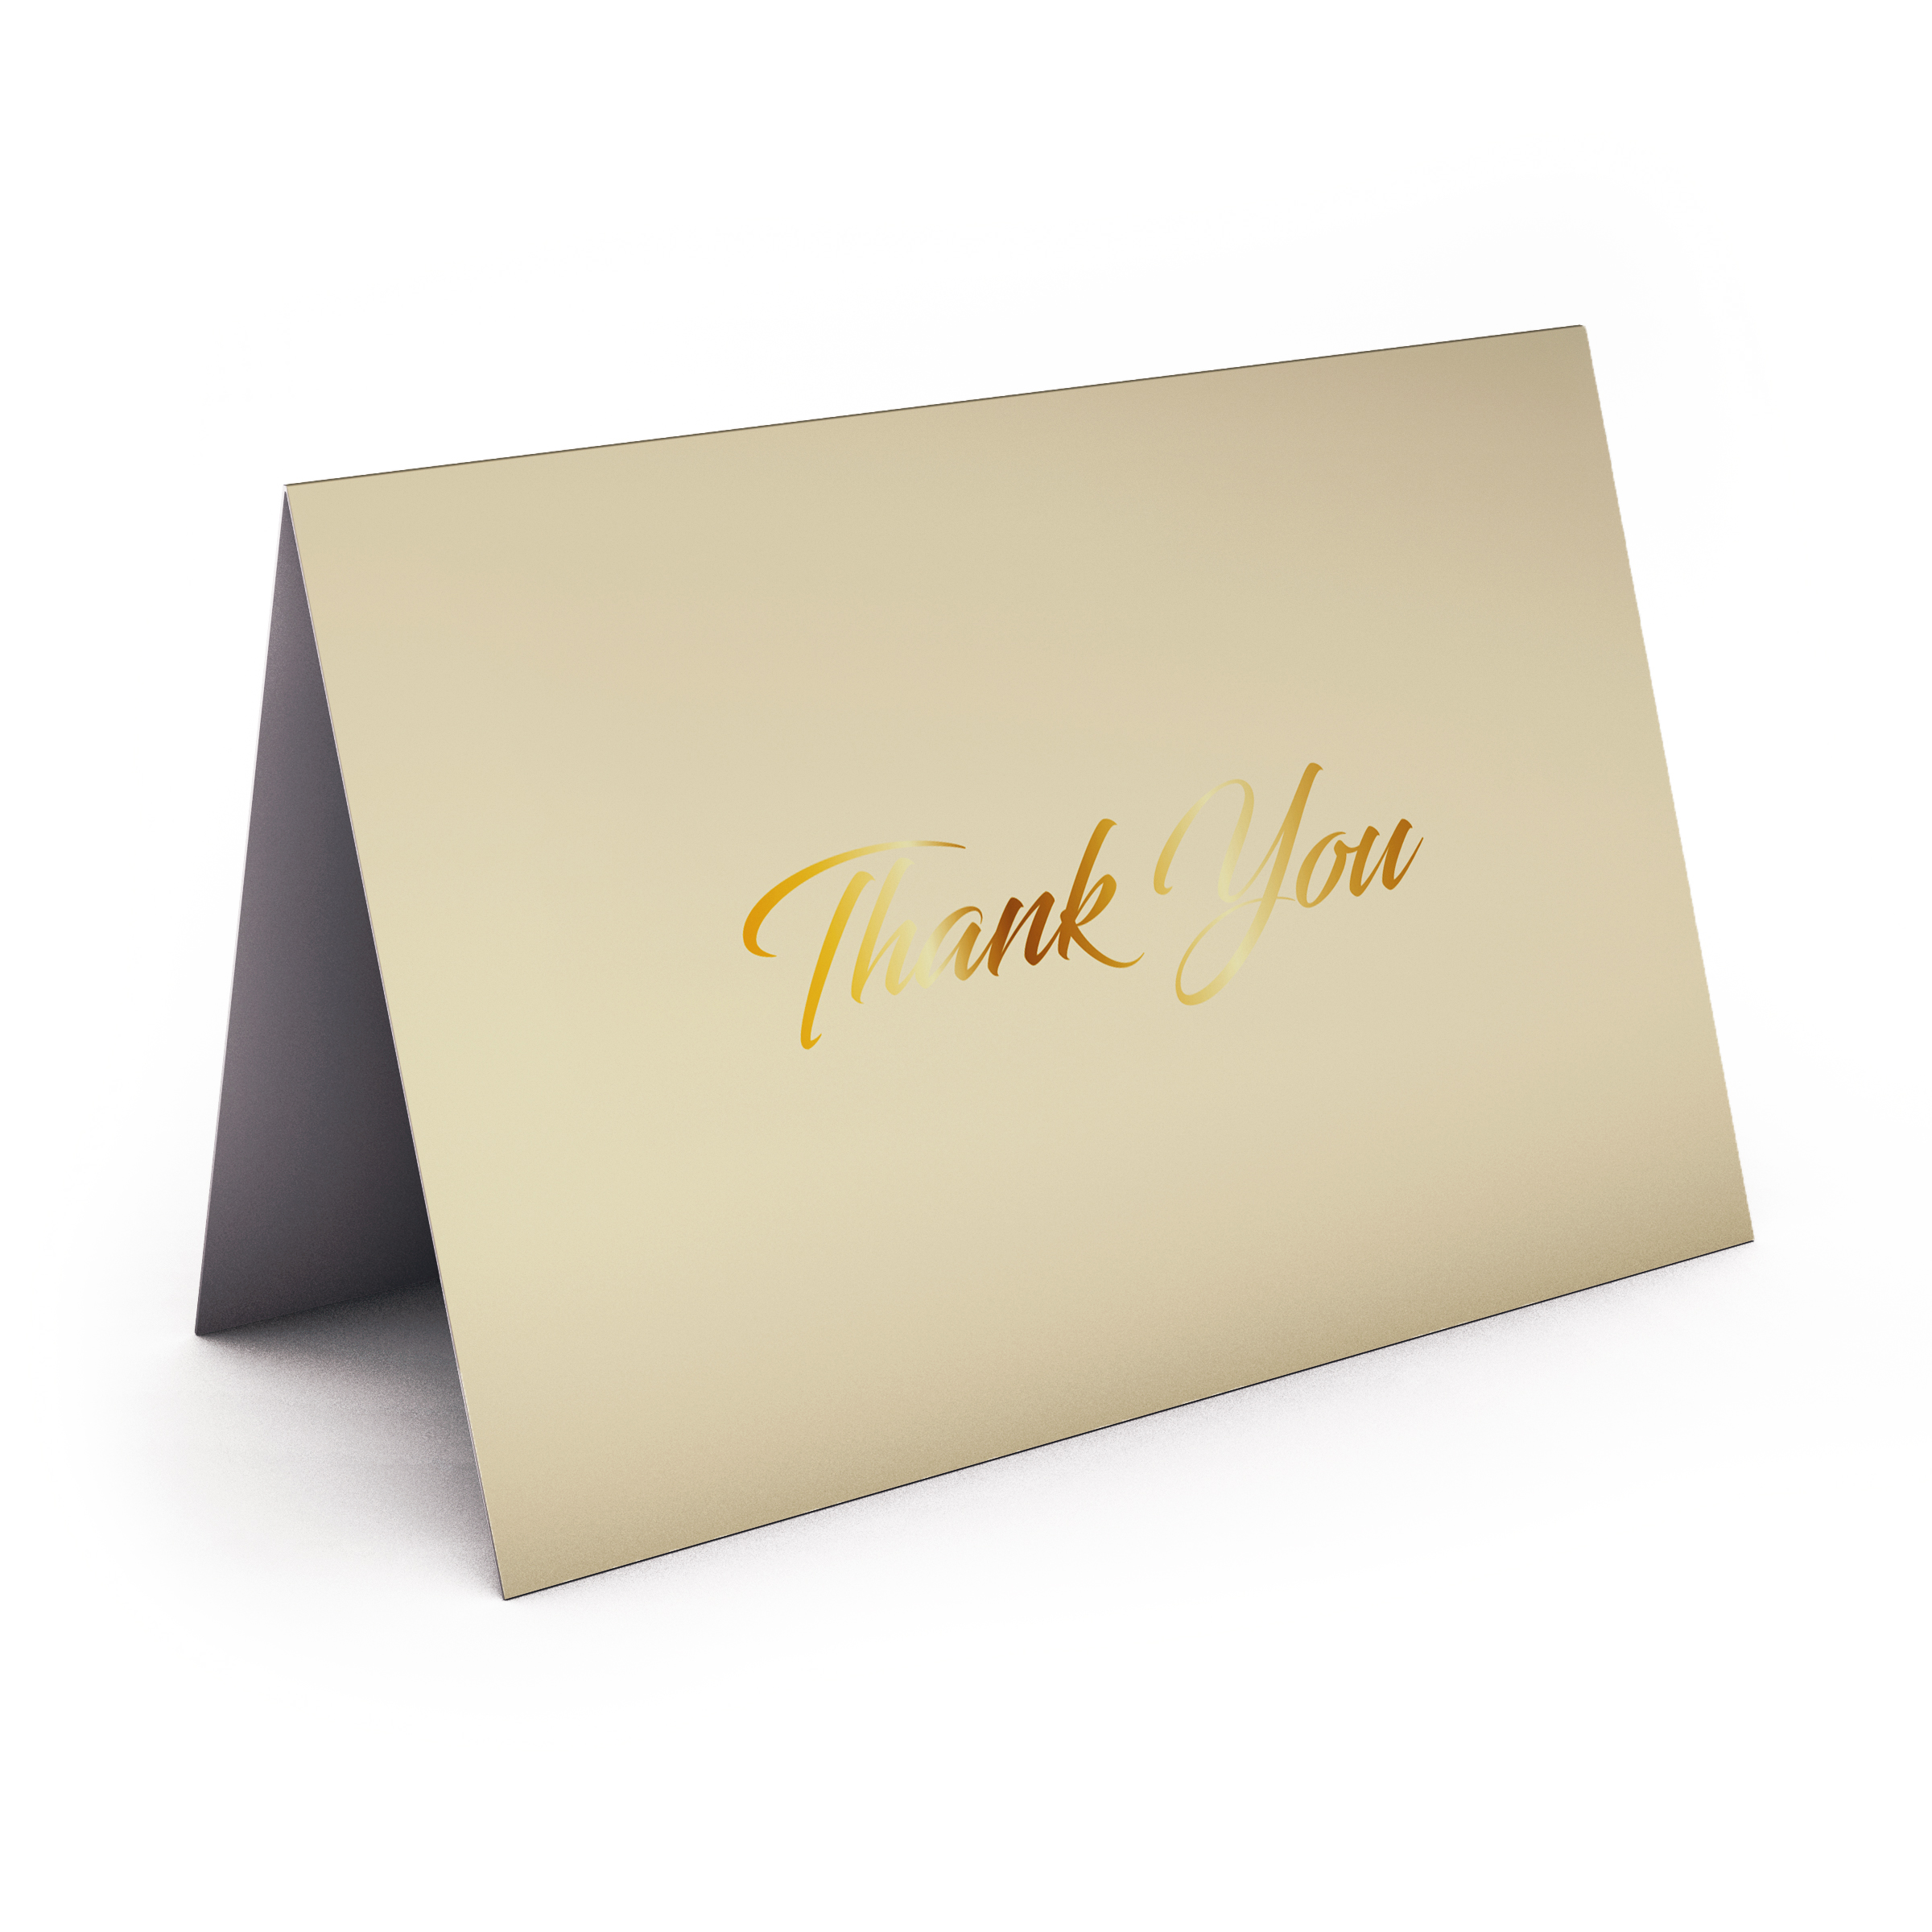 Cream Card wtih Gold Foil  5.5 x 4.25 Folded Size